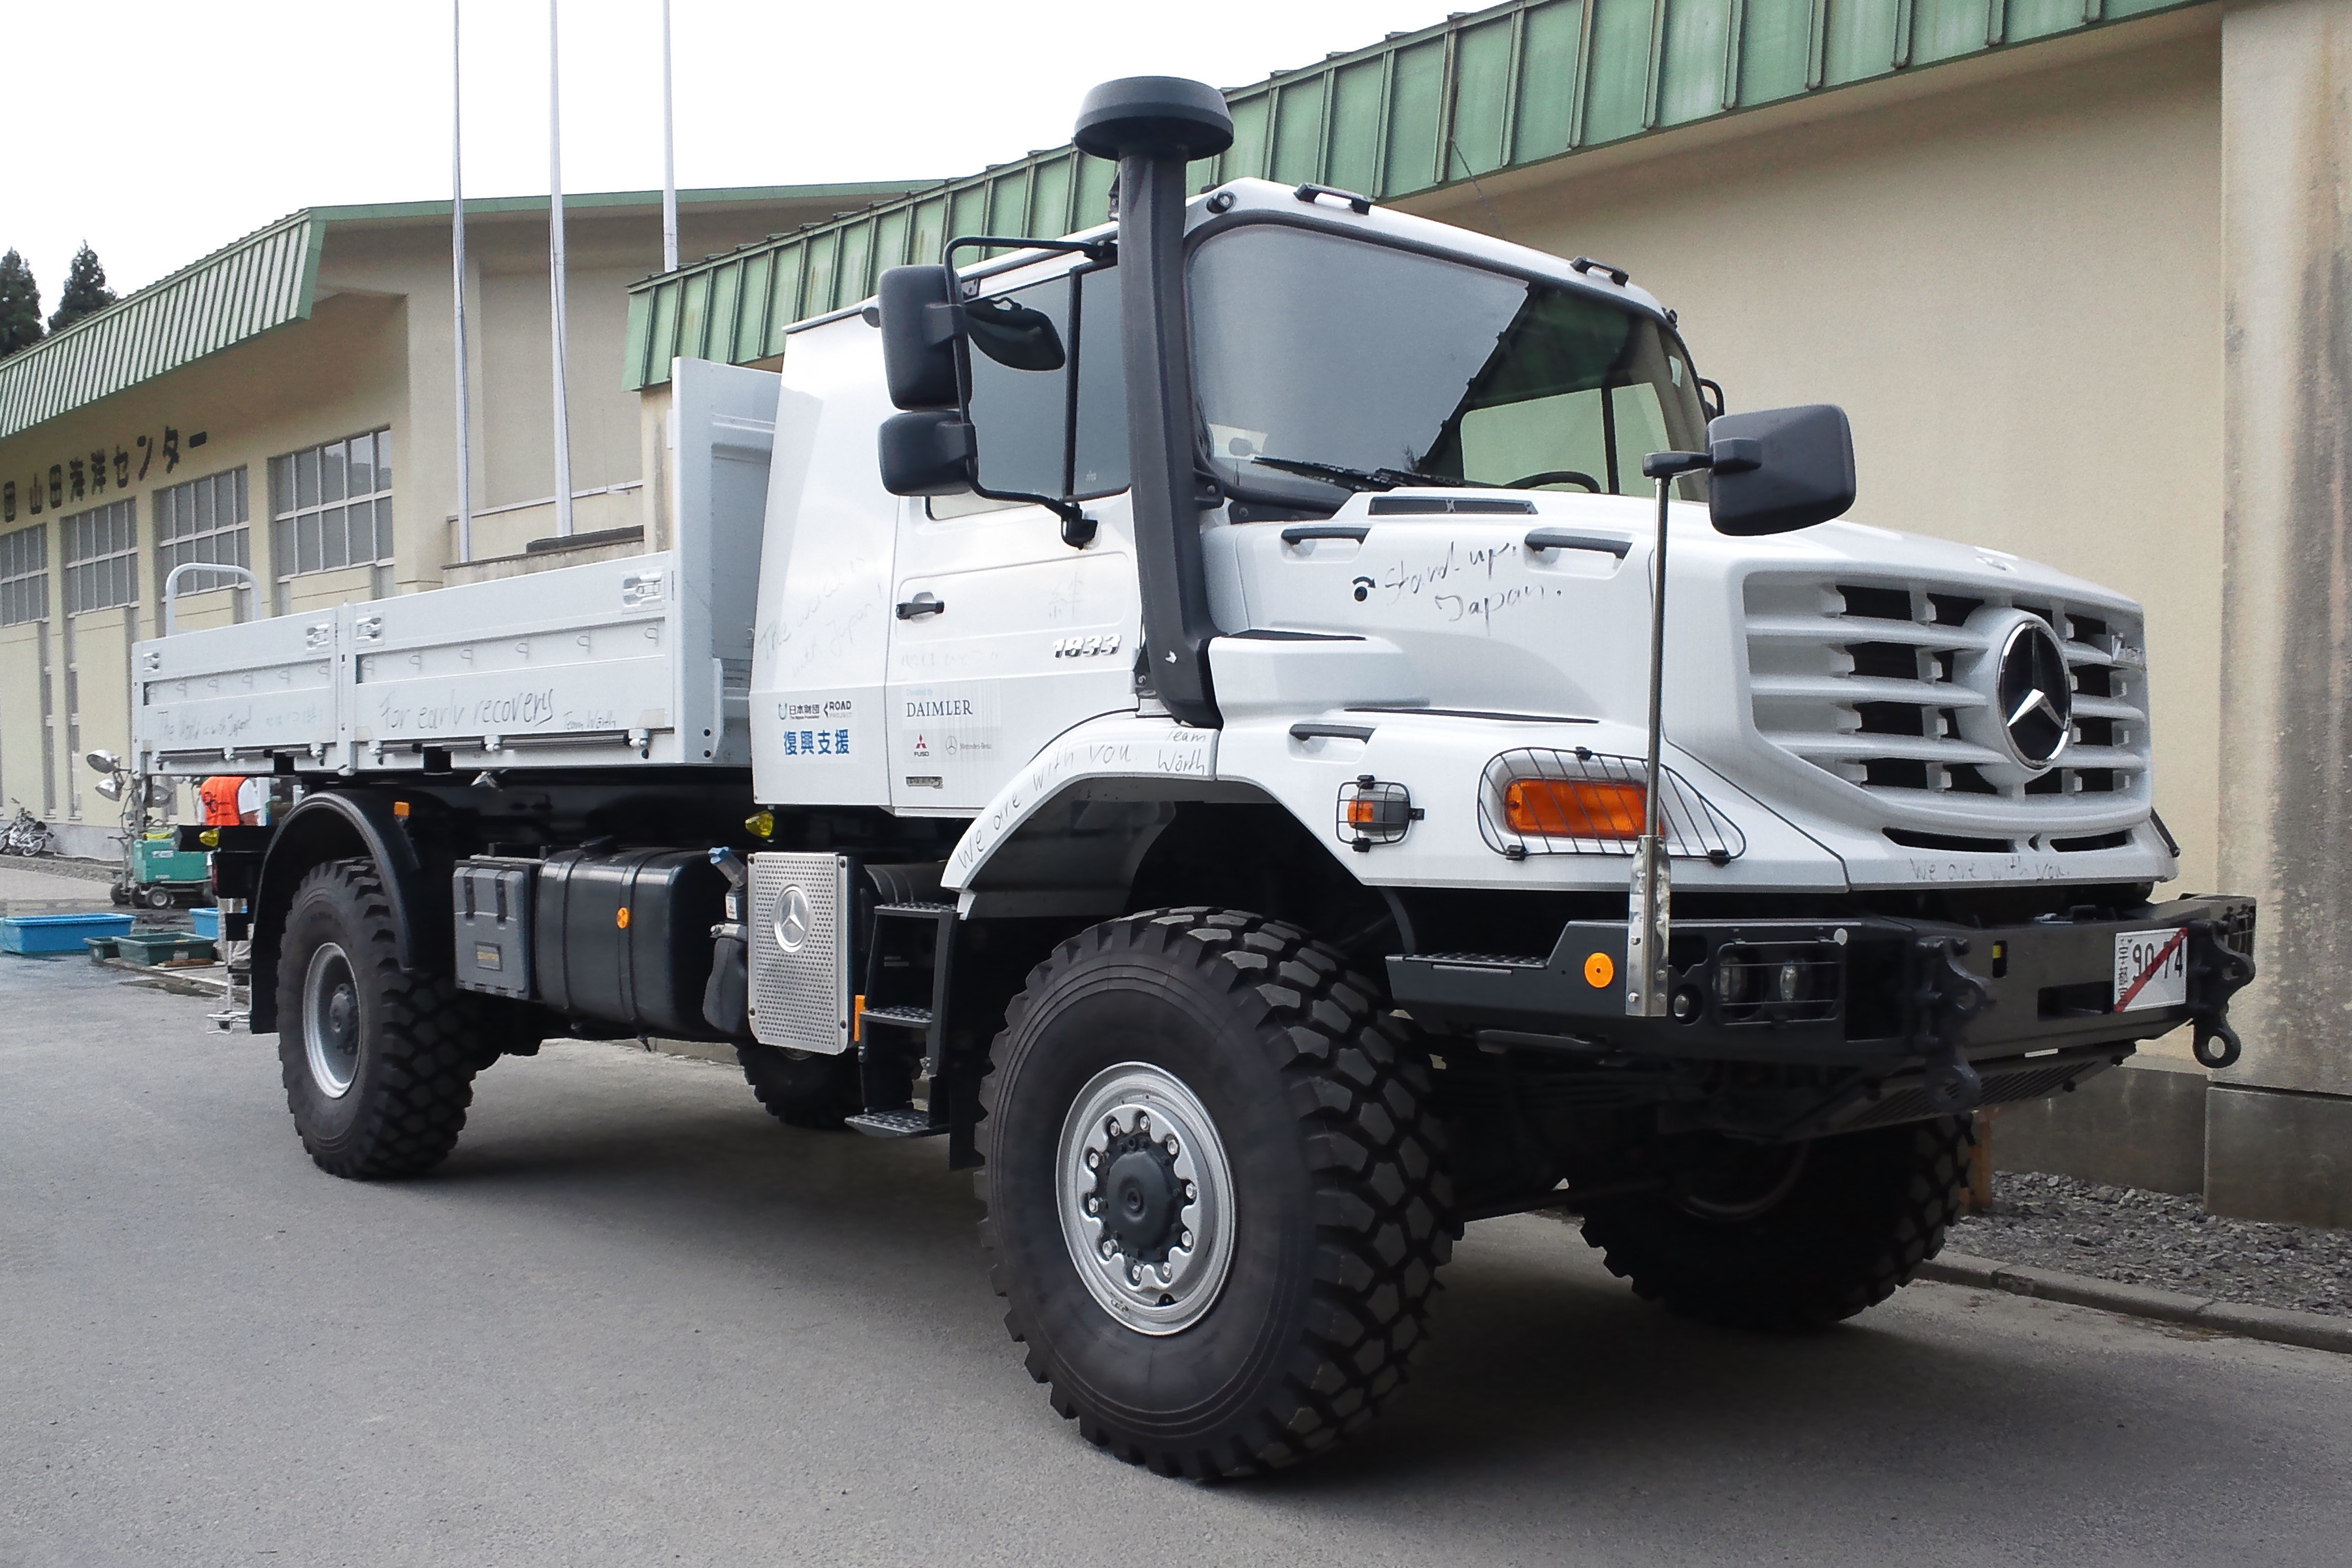 File Mercedes Benz Zetros As A Relief Vehicle For The 2011 Tohoku